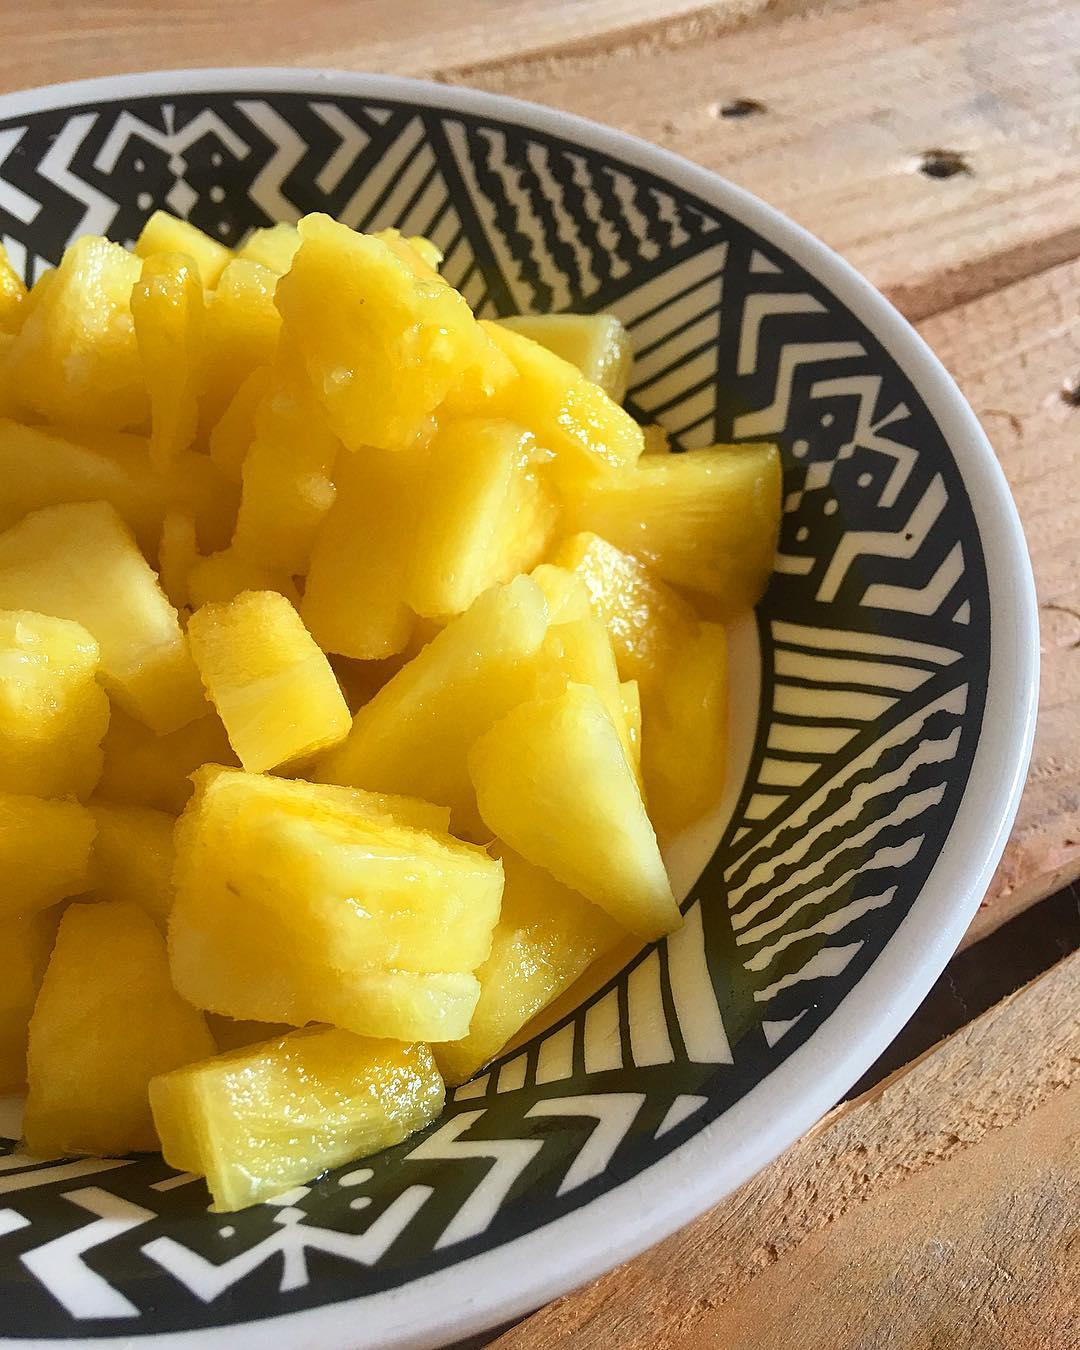 ANANAS ? mi amor ? bon'ap  _______________ #ananas #ananas? #fruits #food #blogfood #foodblog #foodblogger #gastronomie #southOfFrance #SudDeFrance #cityTrip  #travel #blogTravel #TravelBlog #frenchBlogger #blogueuse #blog #blogueusedusud #pintademontpellier #montpellier #homesweethome #healthyfood #healthy #healthylife